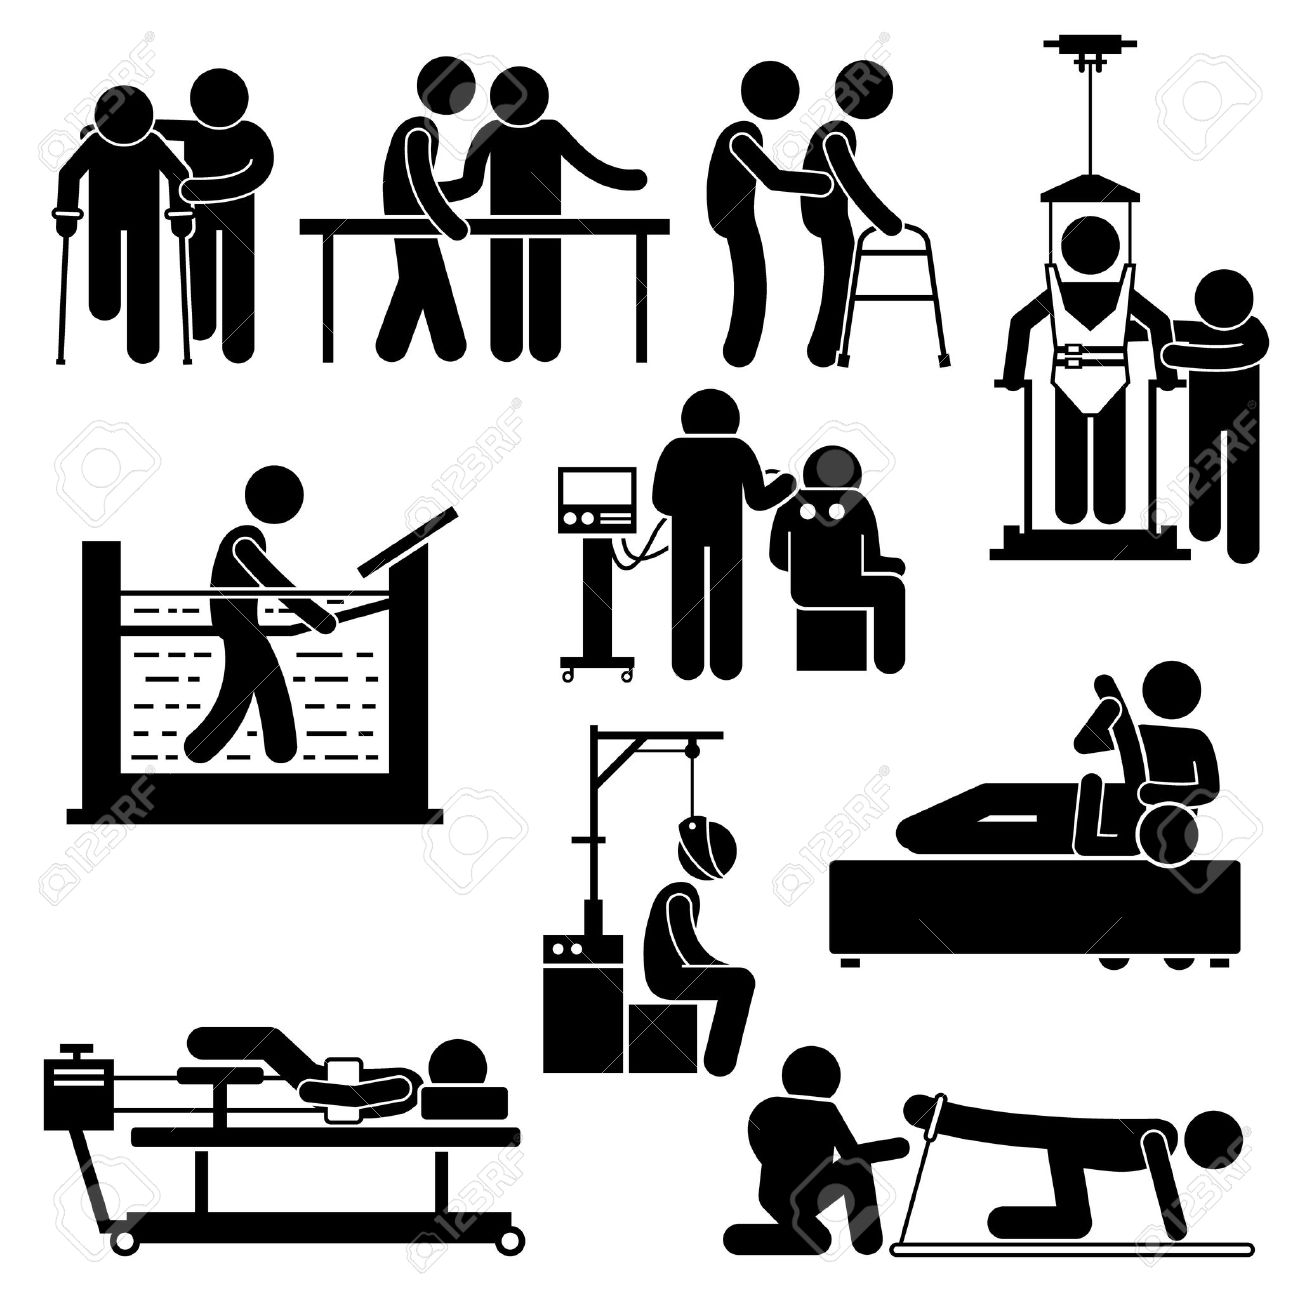 Physio Physiotherapy and Rehabilitation Treatment Stick Figure Pictogram Icons - 41856388